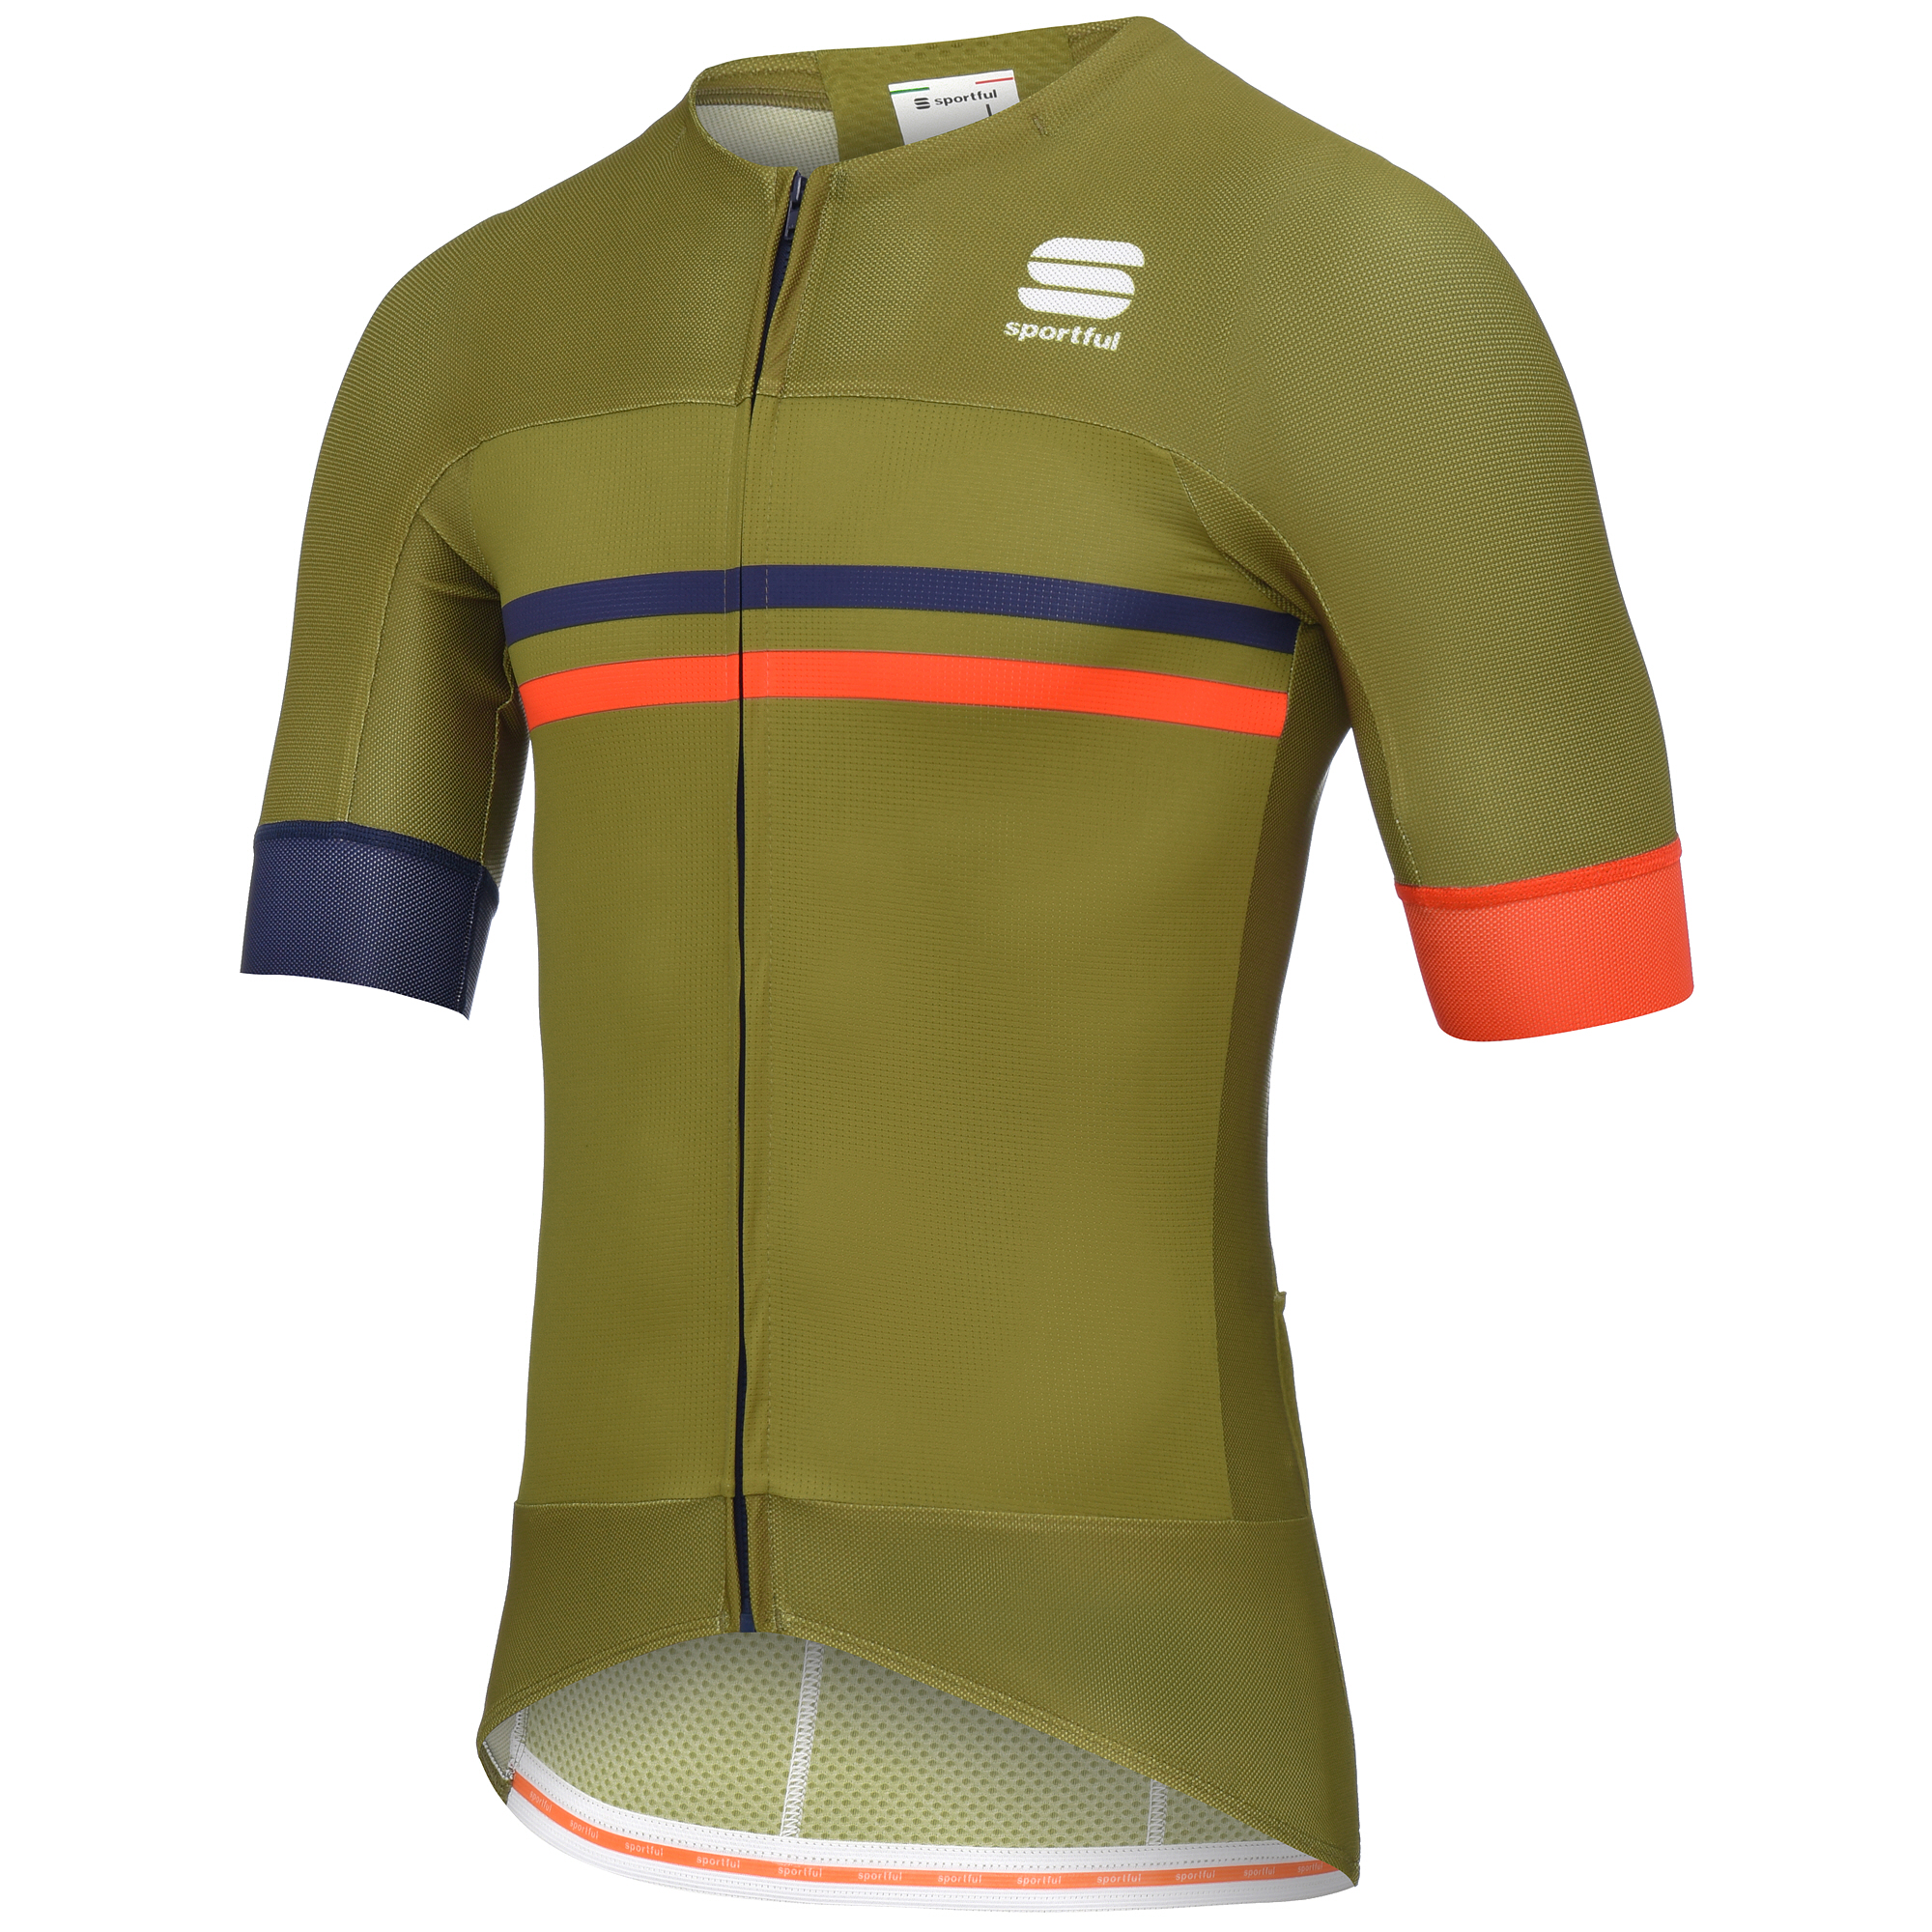 Sportful Exclusive Retro Classic Kortærmet trøje - Herre | Jerseys